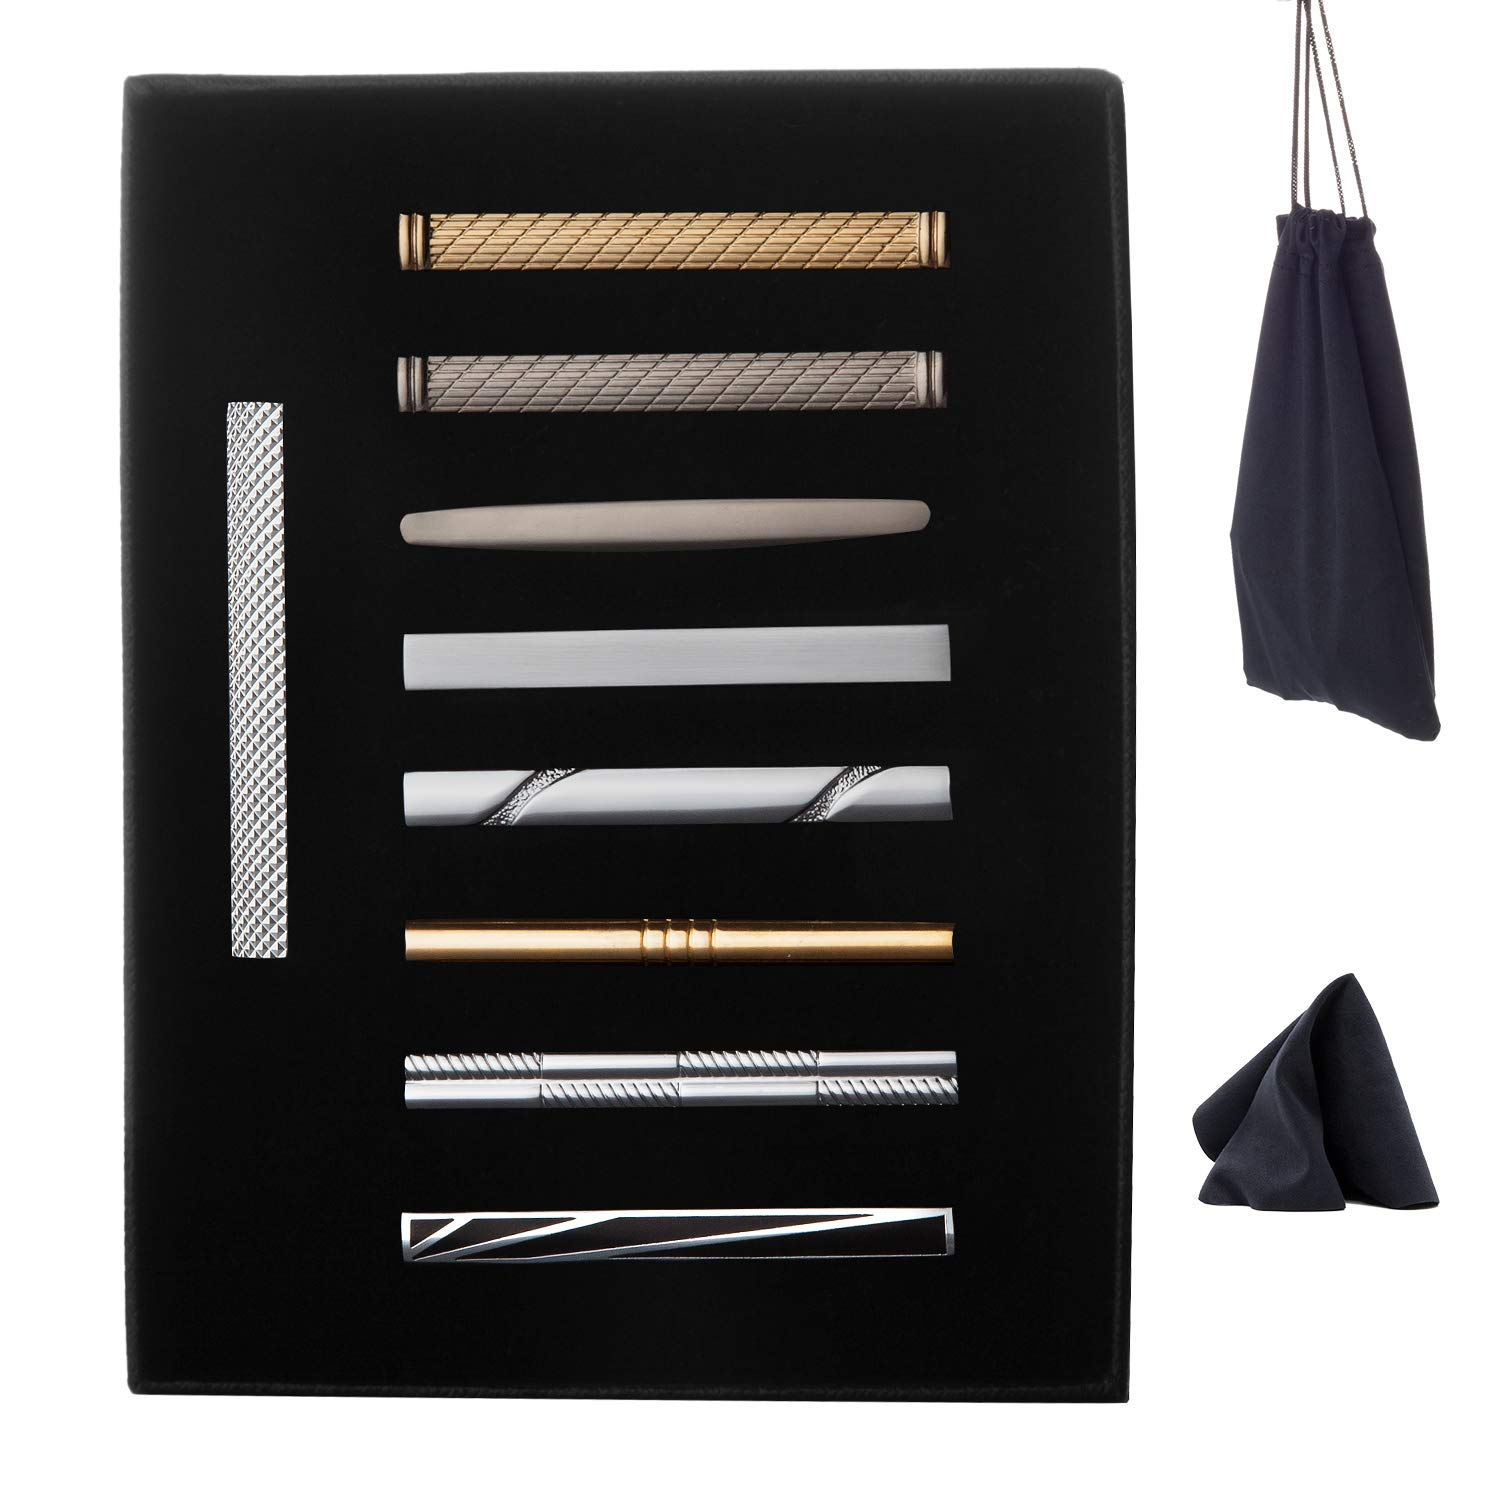 WEWINK PLUS 9 Pcs Tie Clips Set for Men Tie Bar Pinch Clip Set for Regular Ties Necktie Wedding Business with Gift Box (9 pcs Style C with Gift Box)